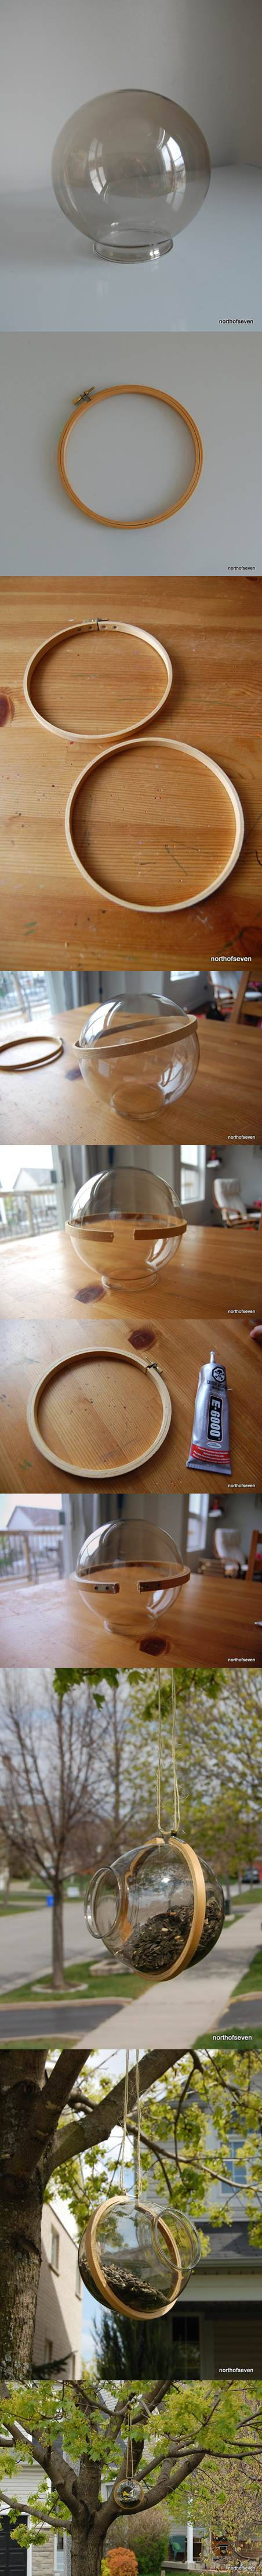 DIY Bird Feeder from a Globe Light Cover 2